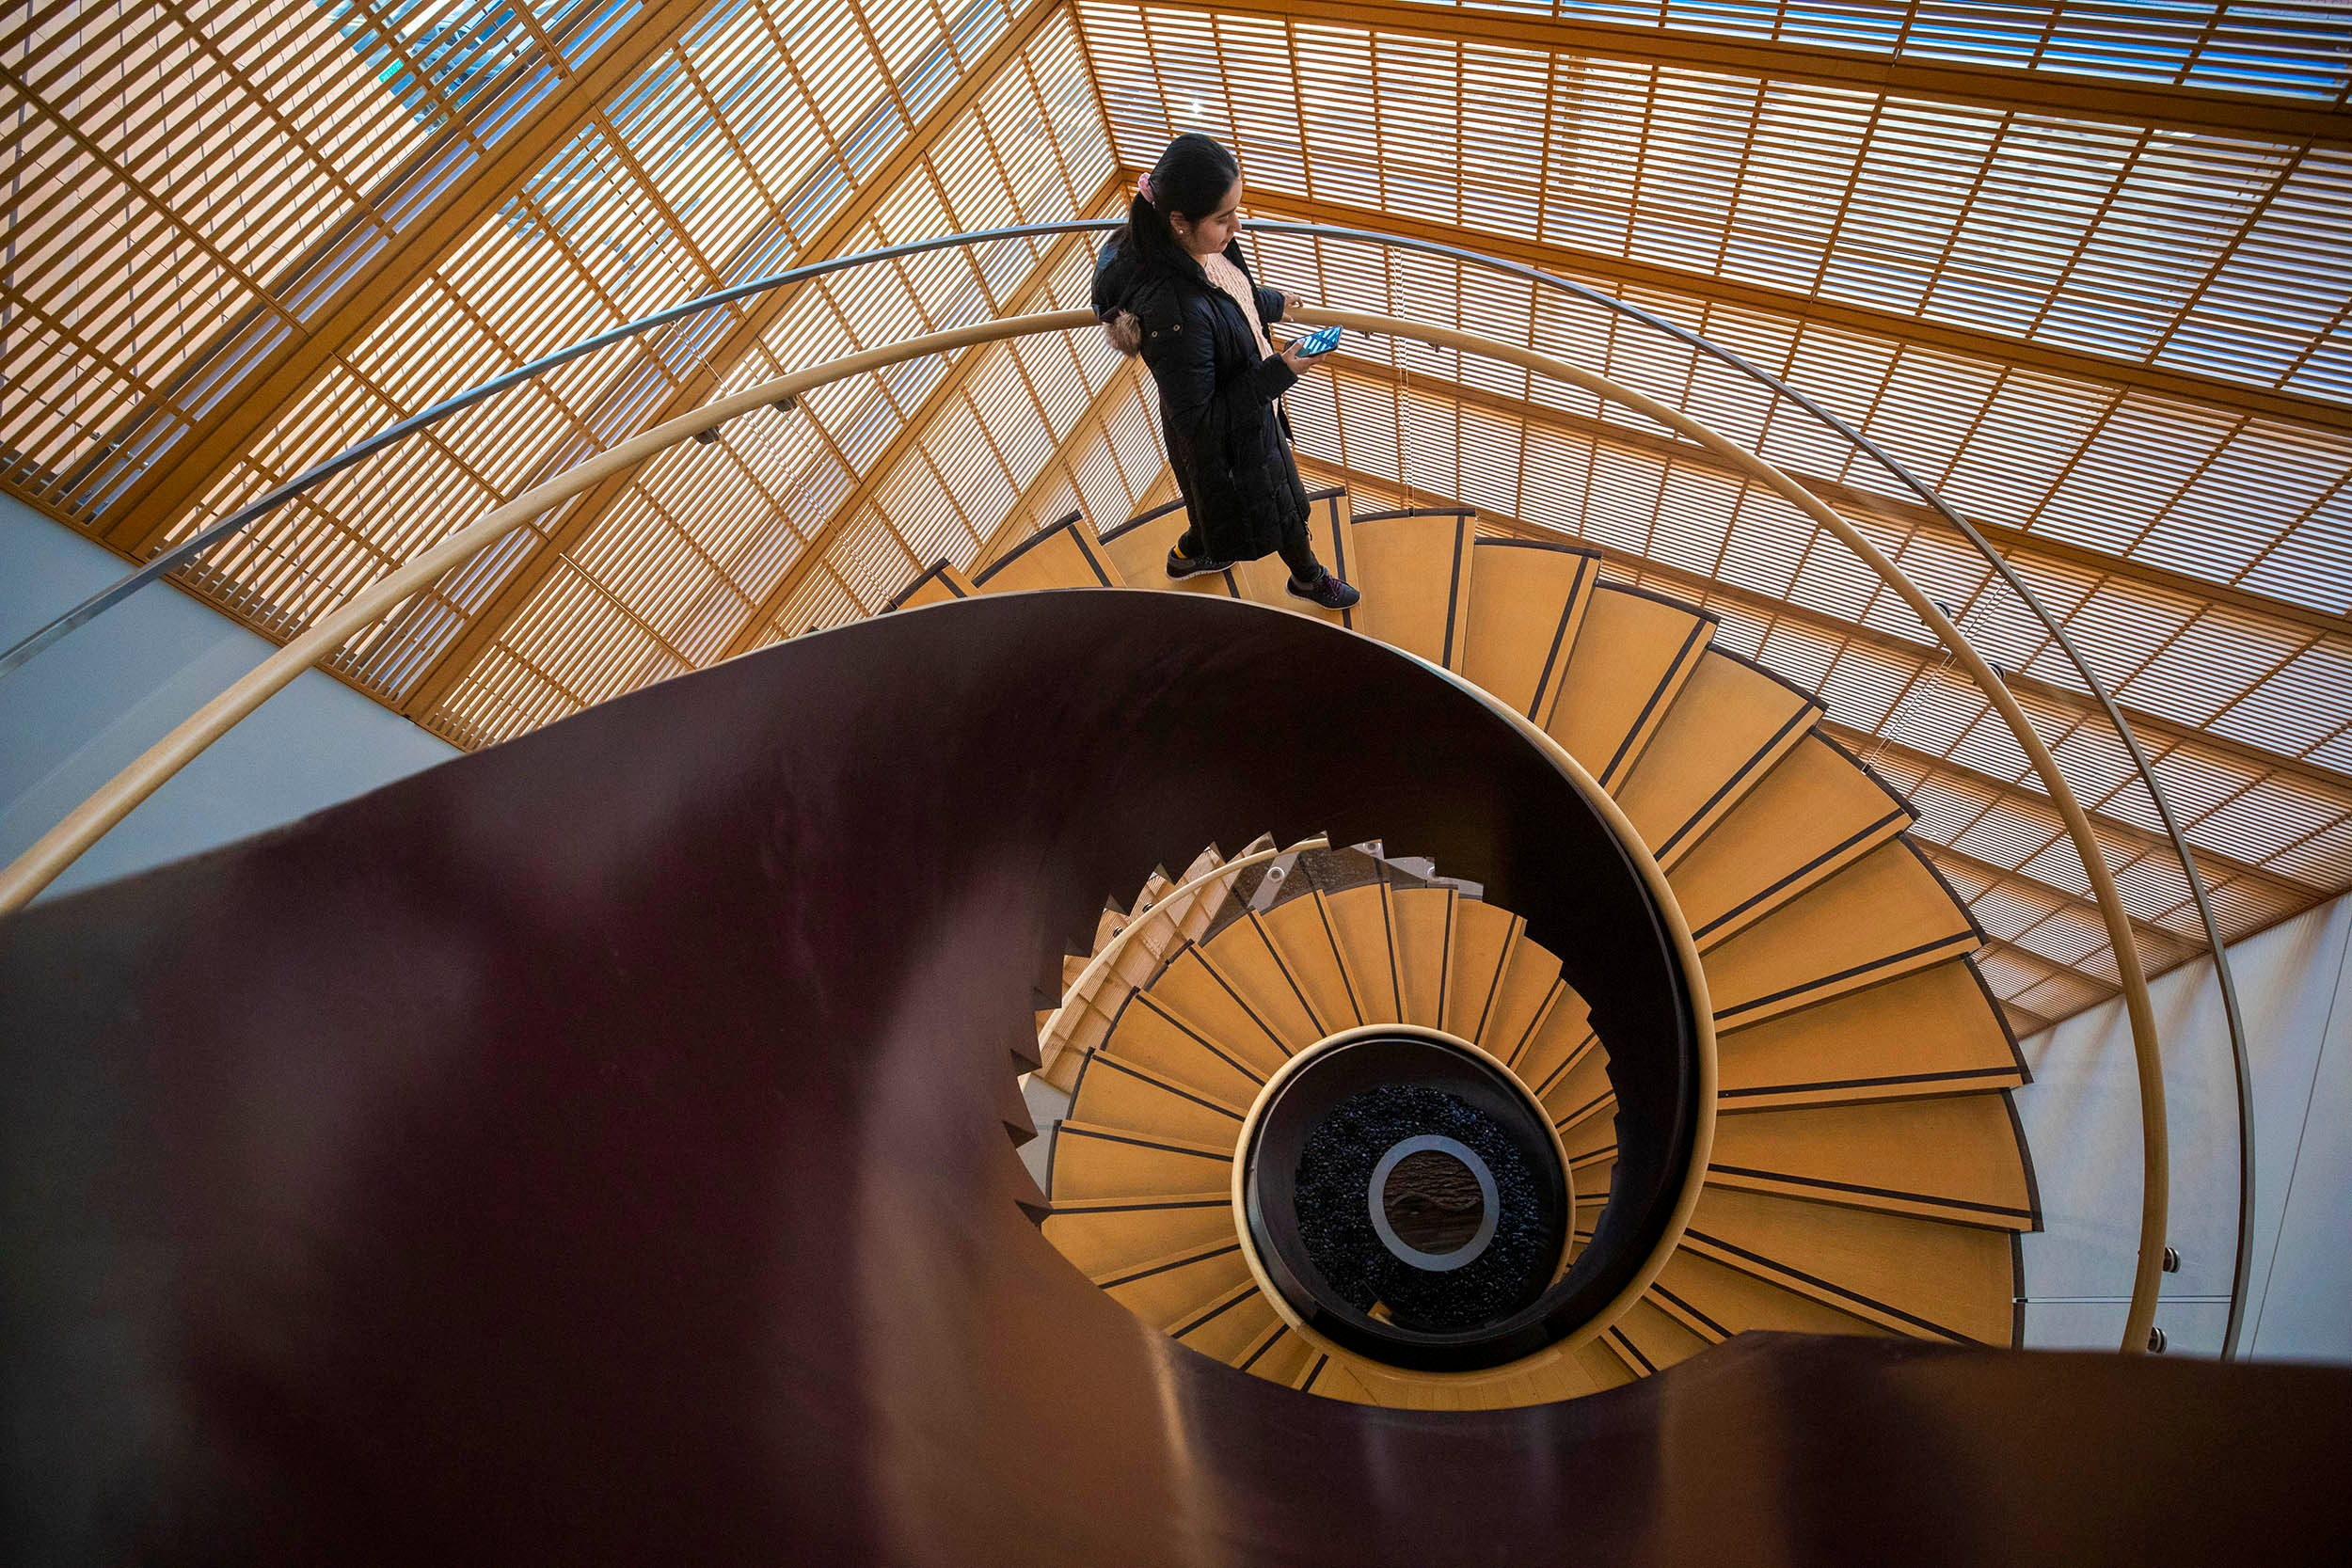 Shubhangi Bhadada appears at the crest of a wave-like spiral staircase at the Center for Government and International Studies.